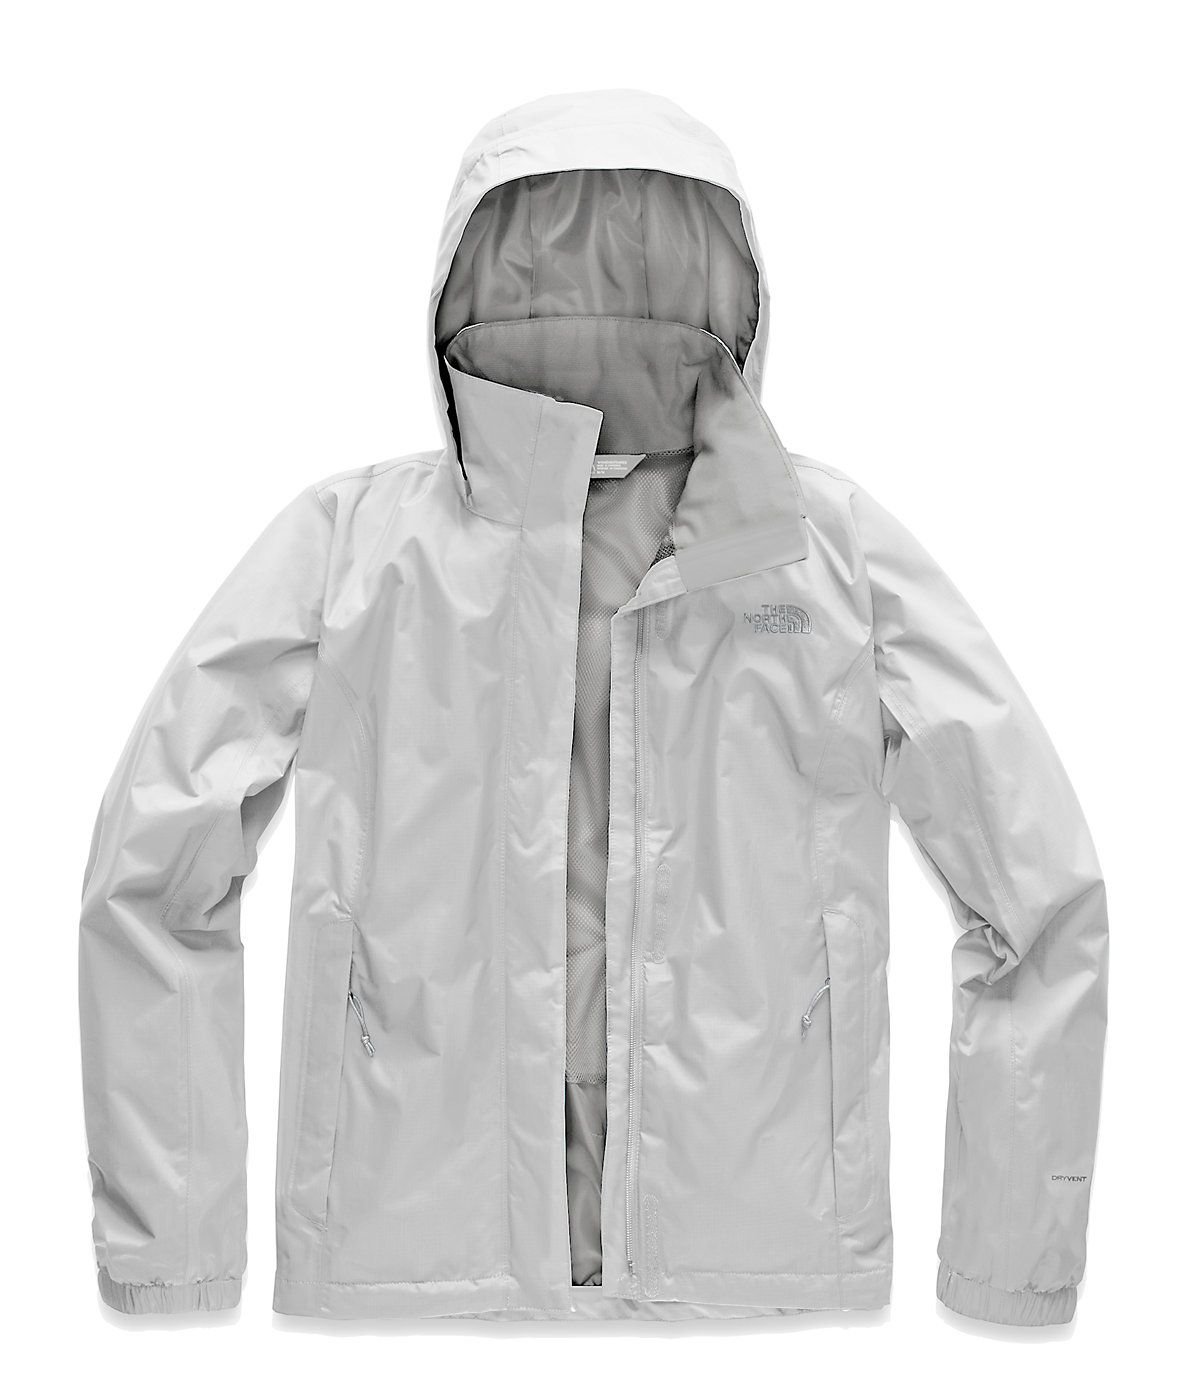 a97a34eb3 The North Face Women's Resolve 2 Rain Jacket | Products in 2019 ...